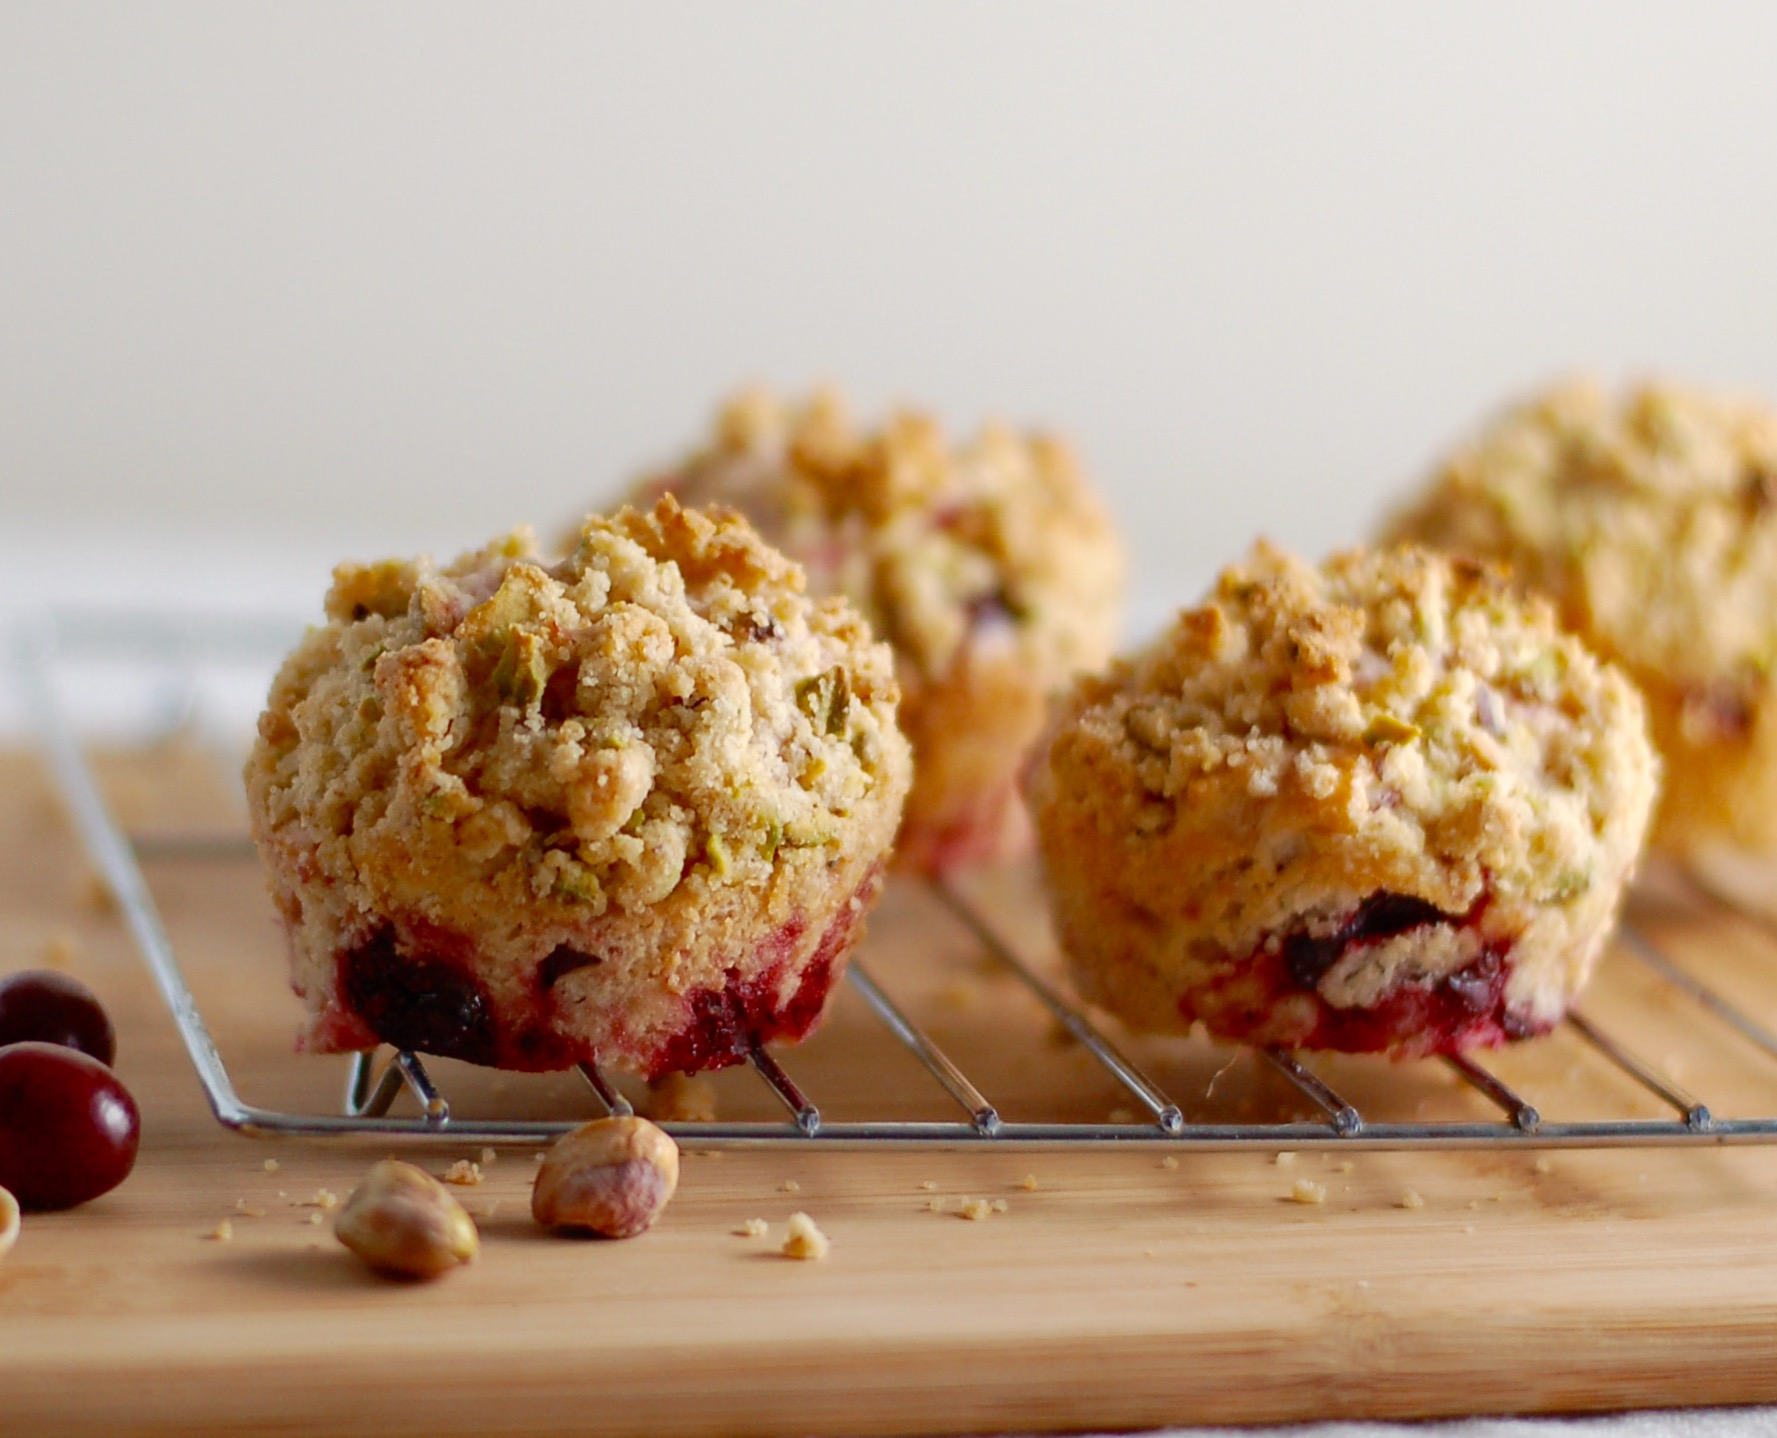 Cranberry Sauce Muffins with Pistachio Crumble